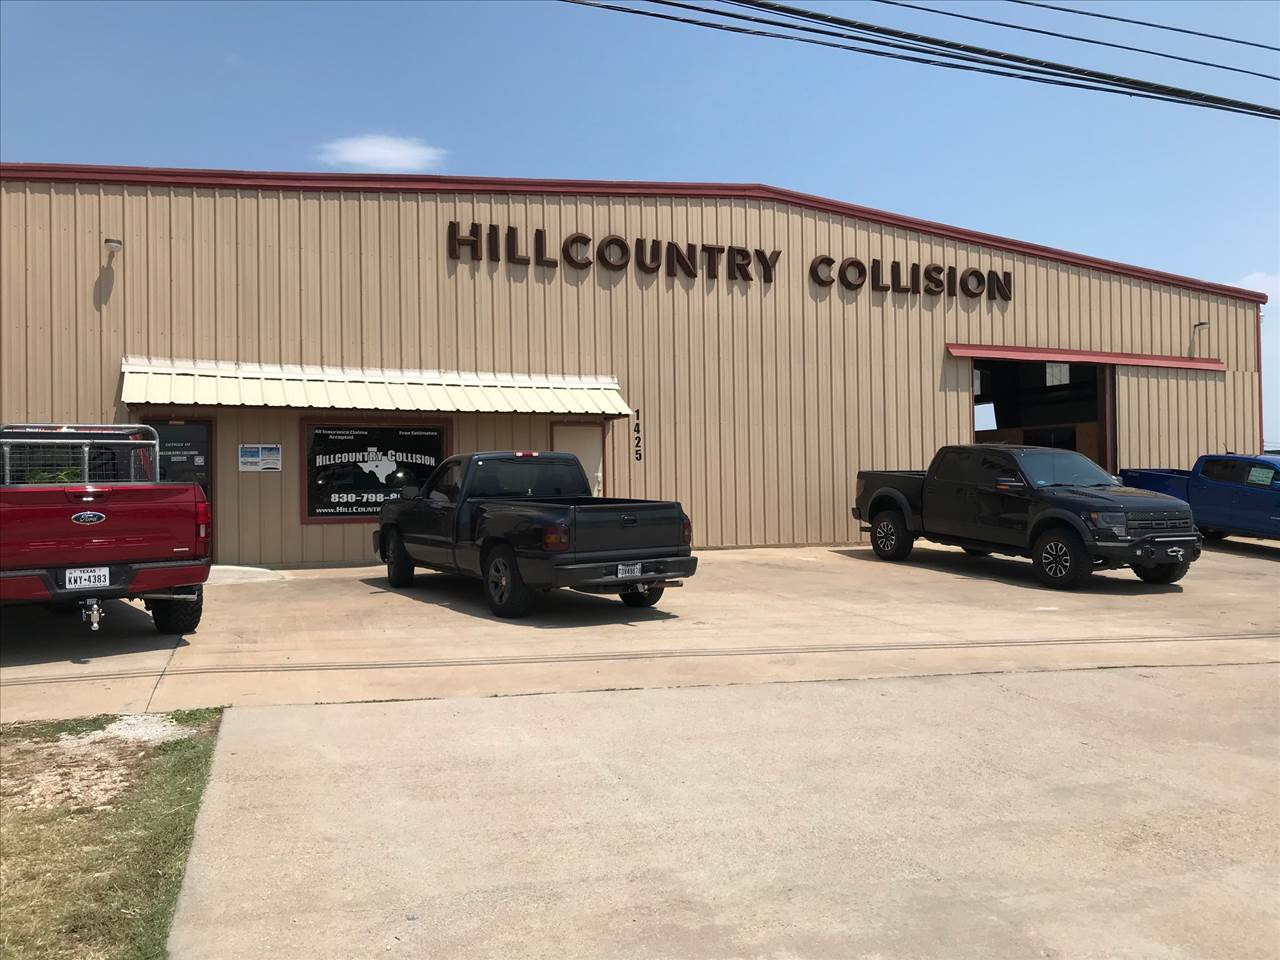 Hillcountry Collision Inc In Marble Falls Tx 78654 Auto Body Shops Carwise Com